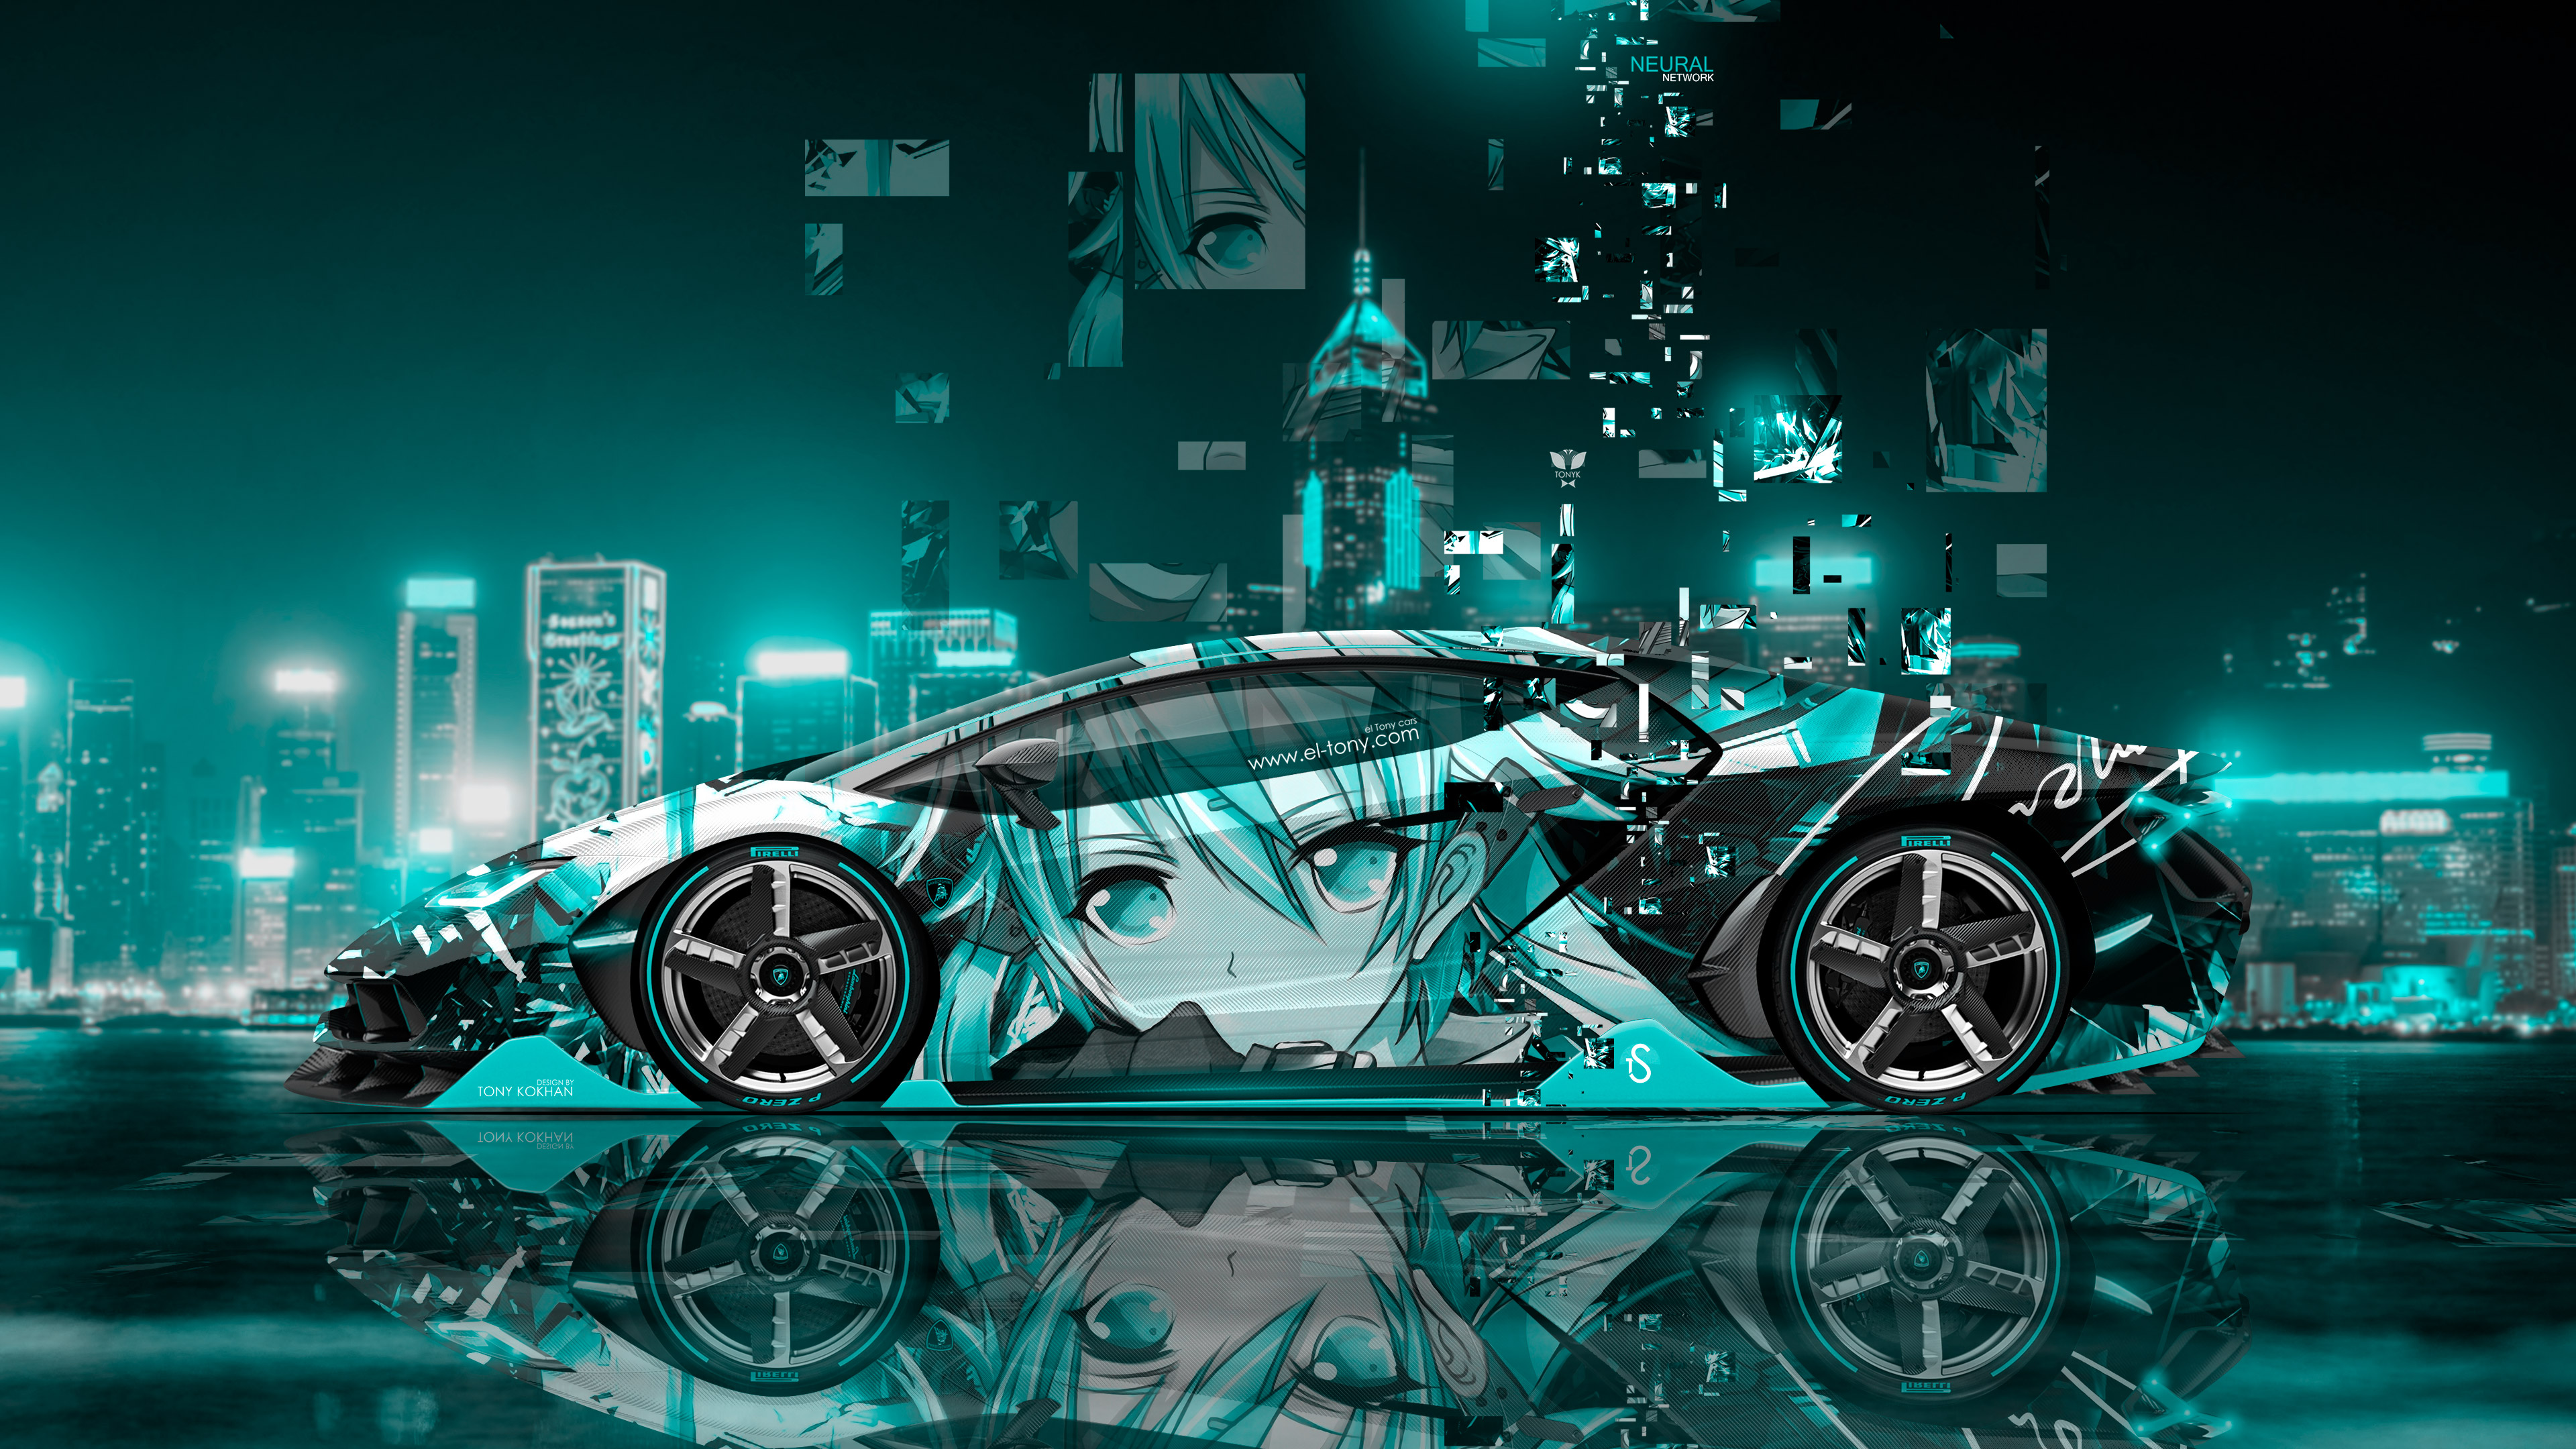 lamborghini centenario side super anime girl aerography china hong kong night city art car